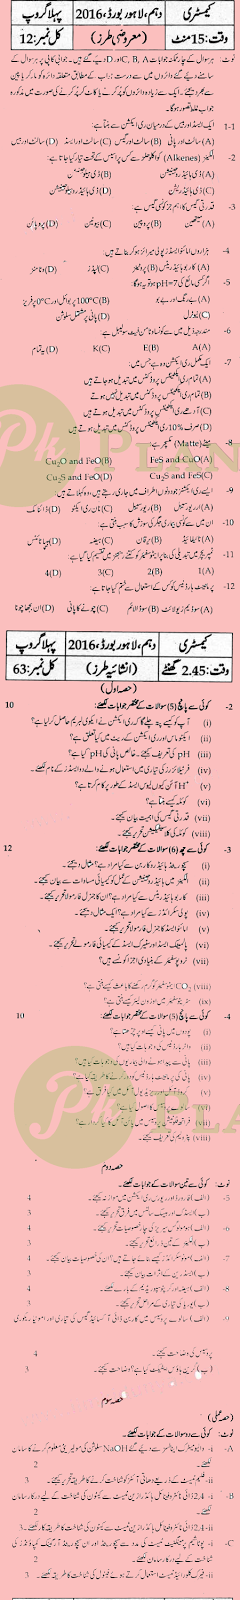 Past Papers of 10th Class Lahore Board Chemistry 2015